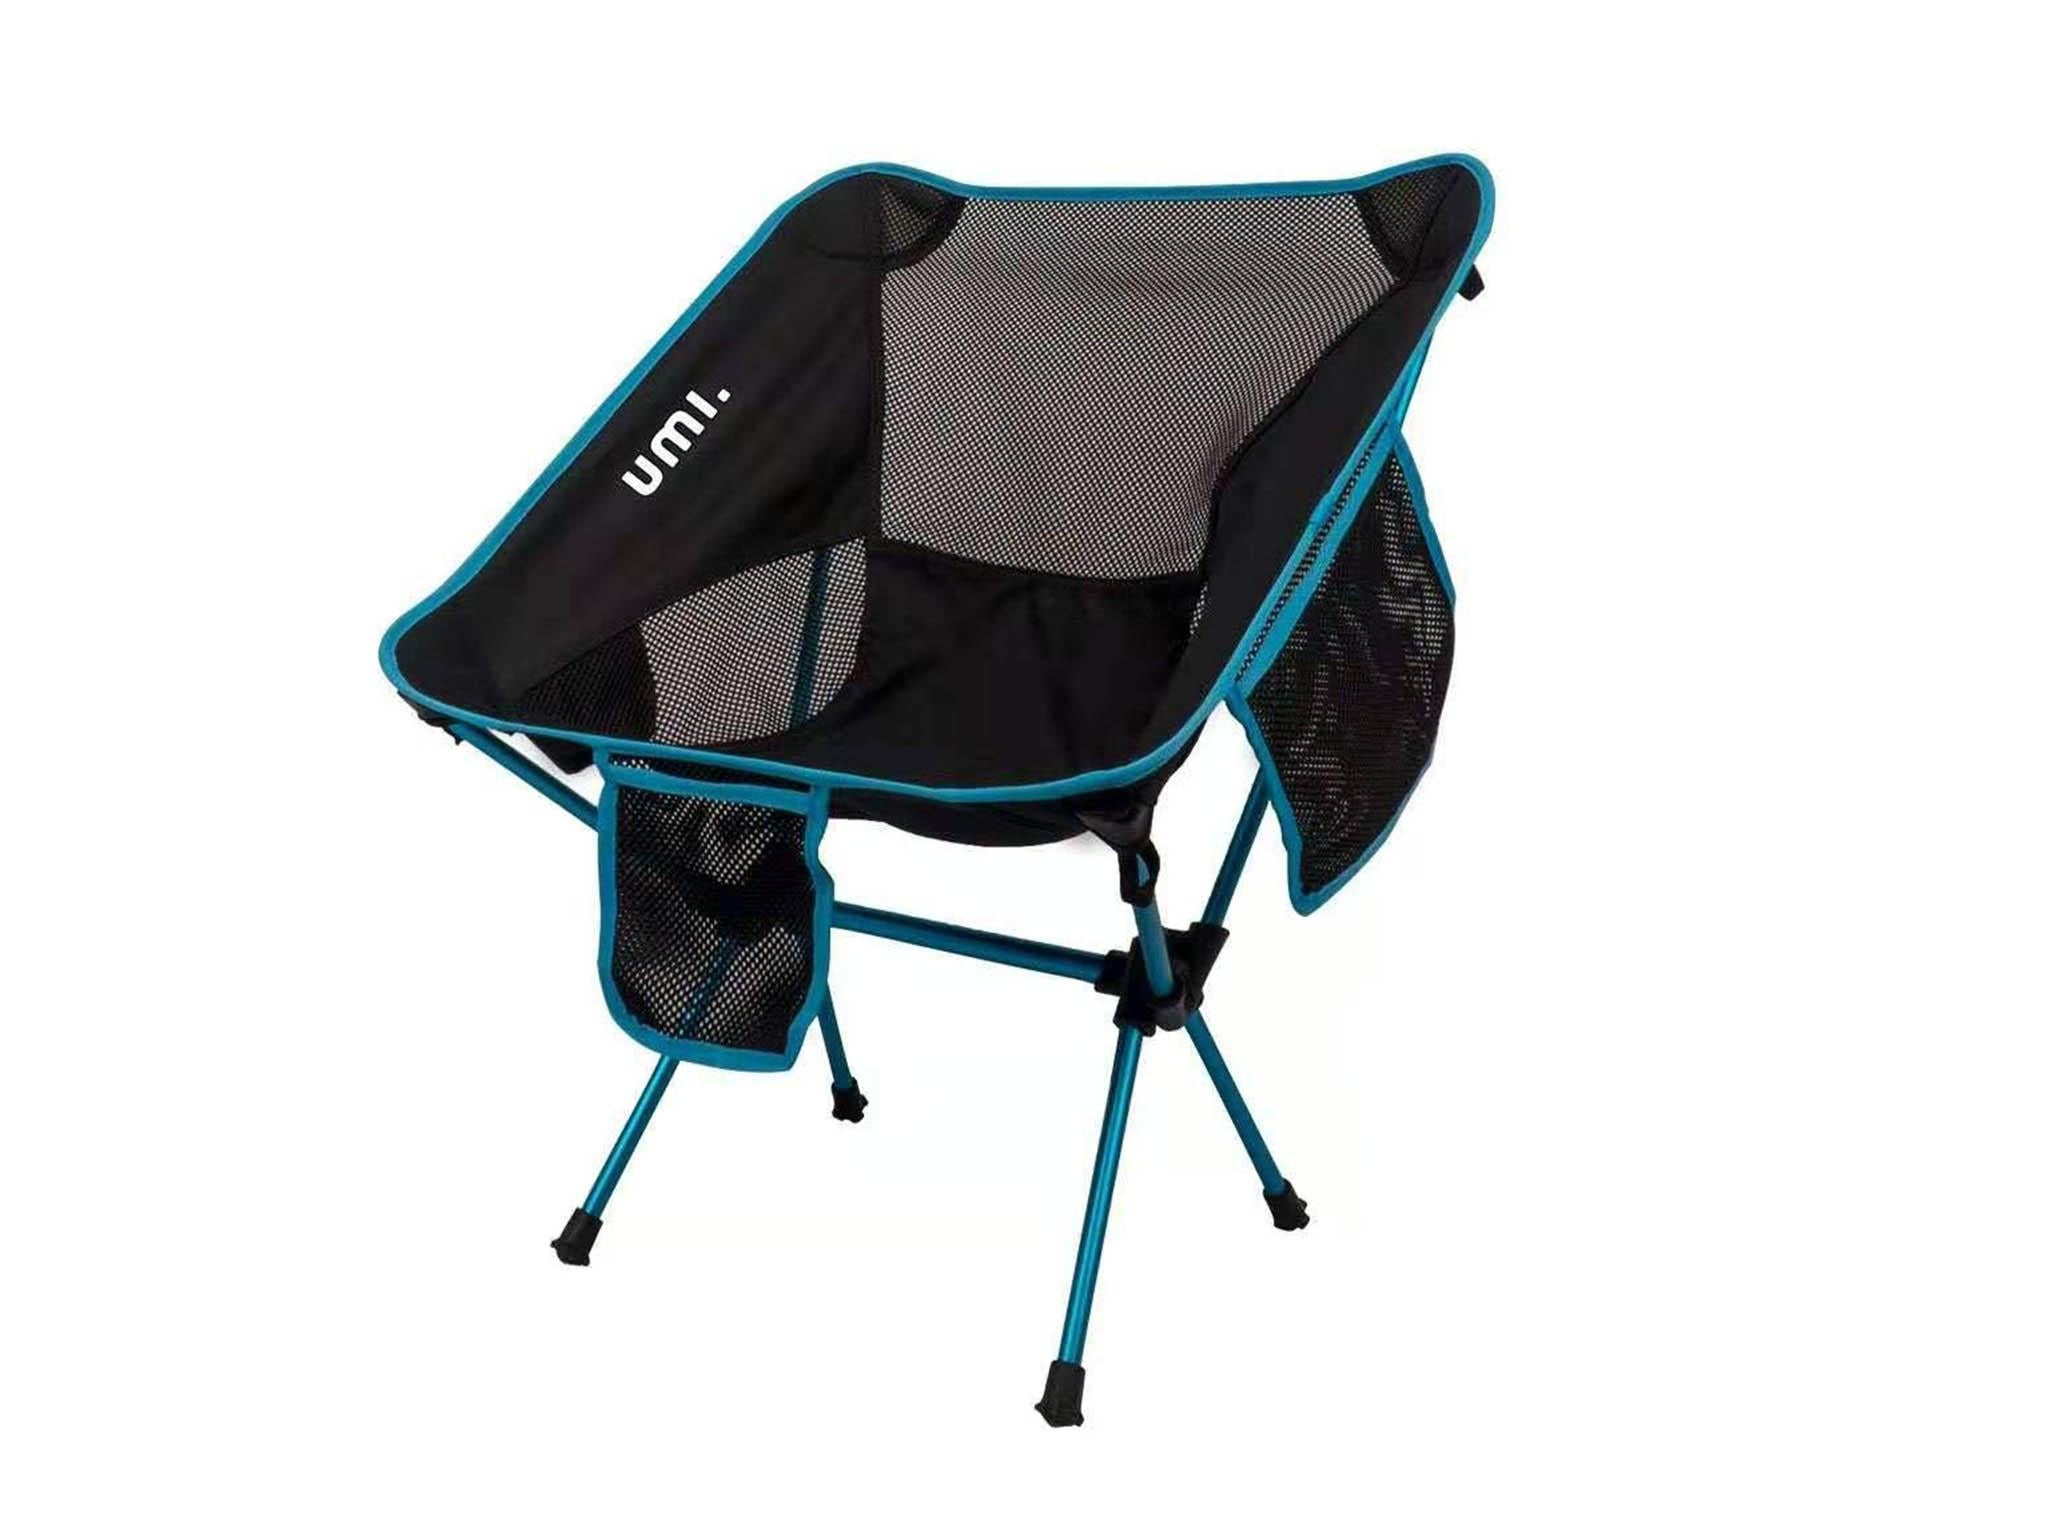 Outstanding Best Camping Chairs To Suit All Your Glamping And Festival Needs Pabps2019 Chair Design Images Pabps2019Com